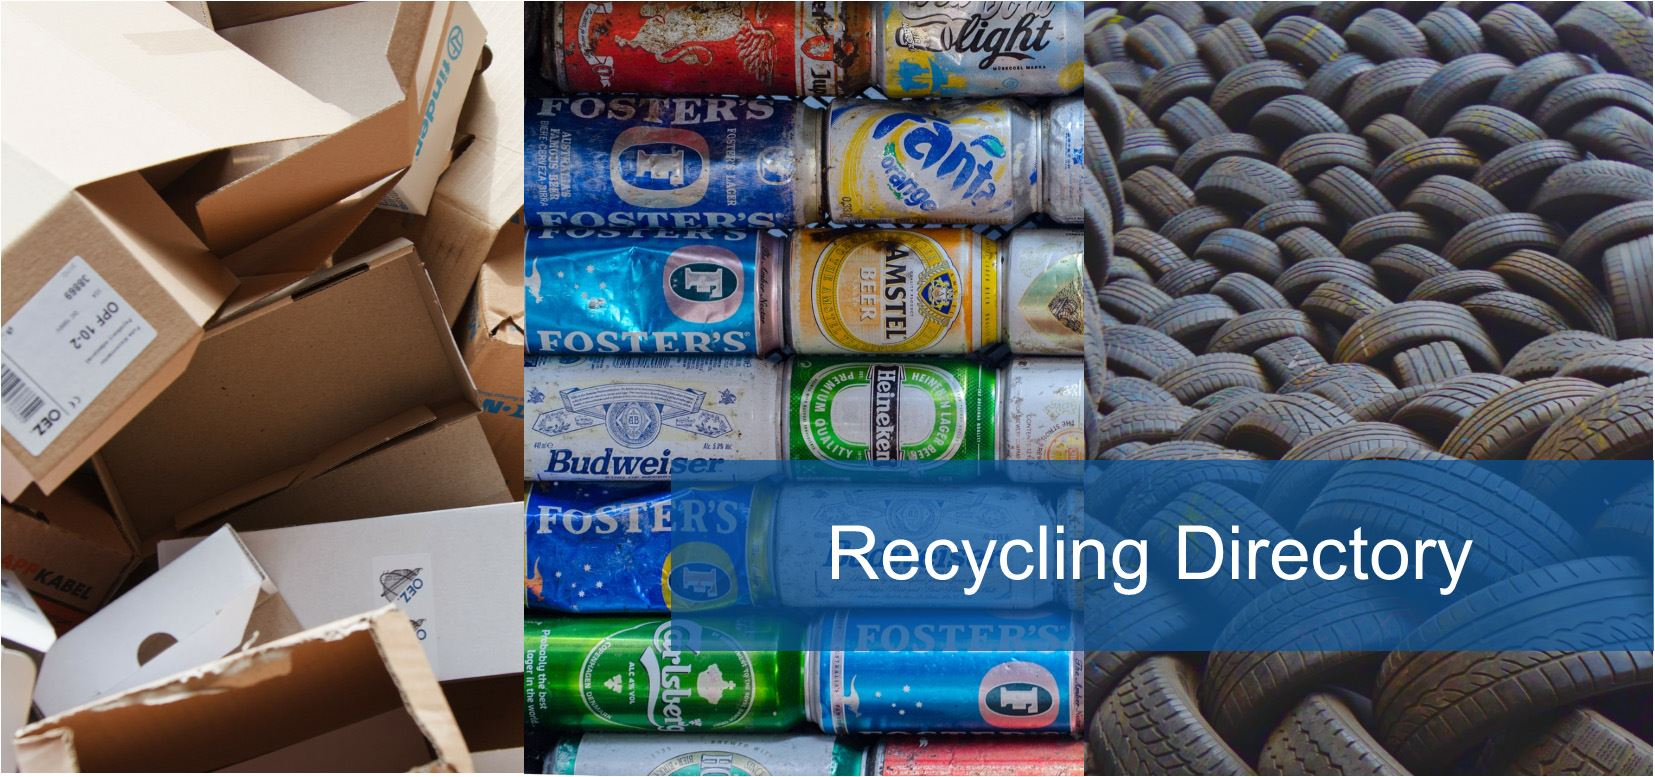 Recycling Directory